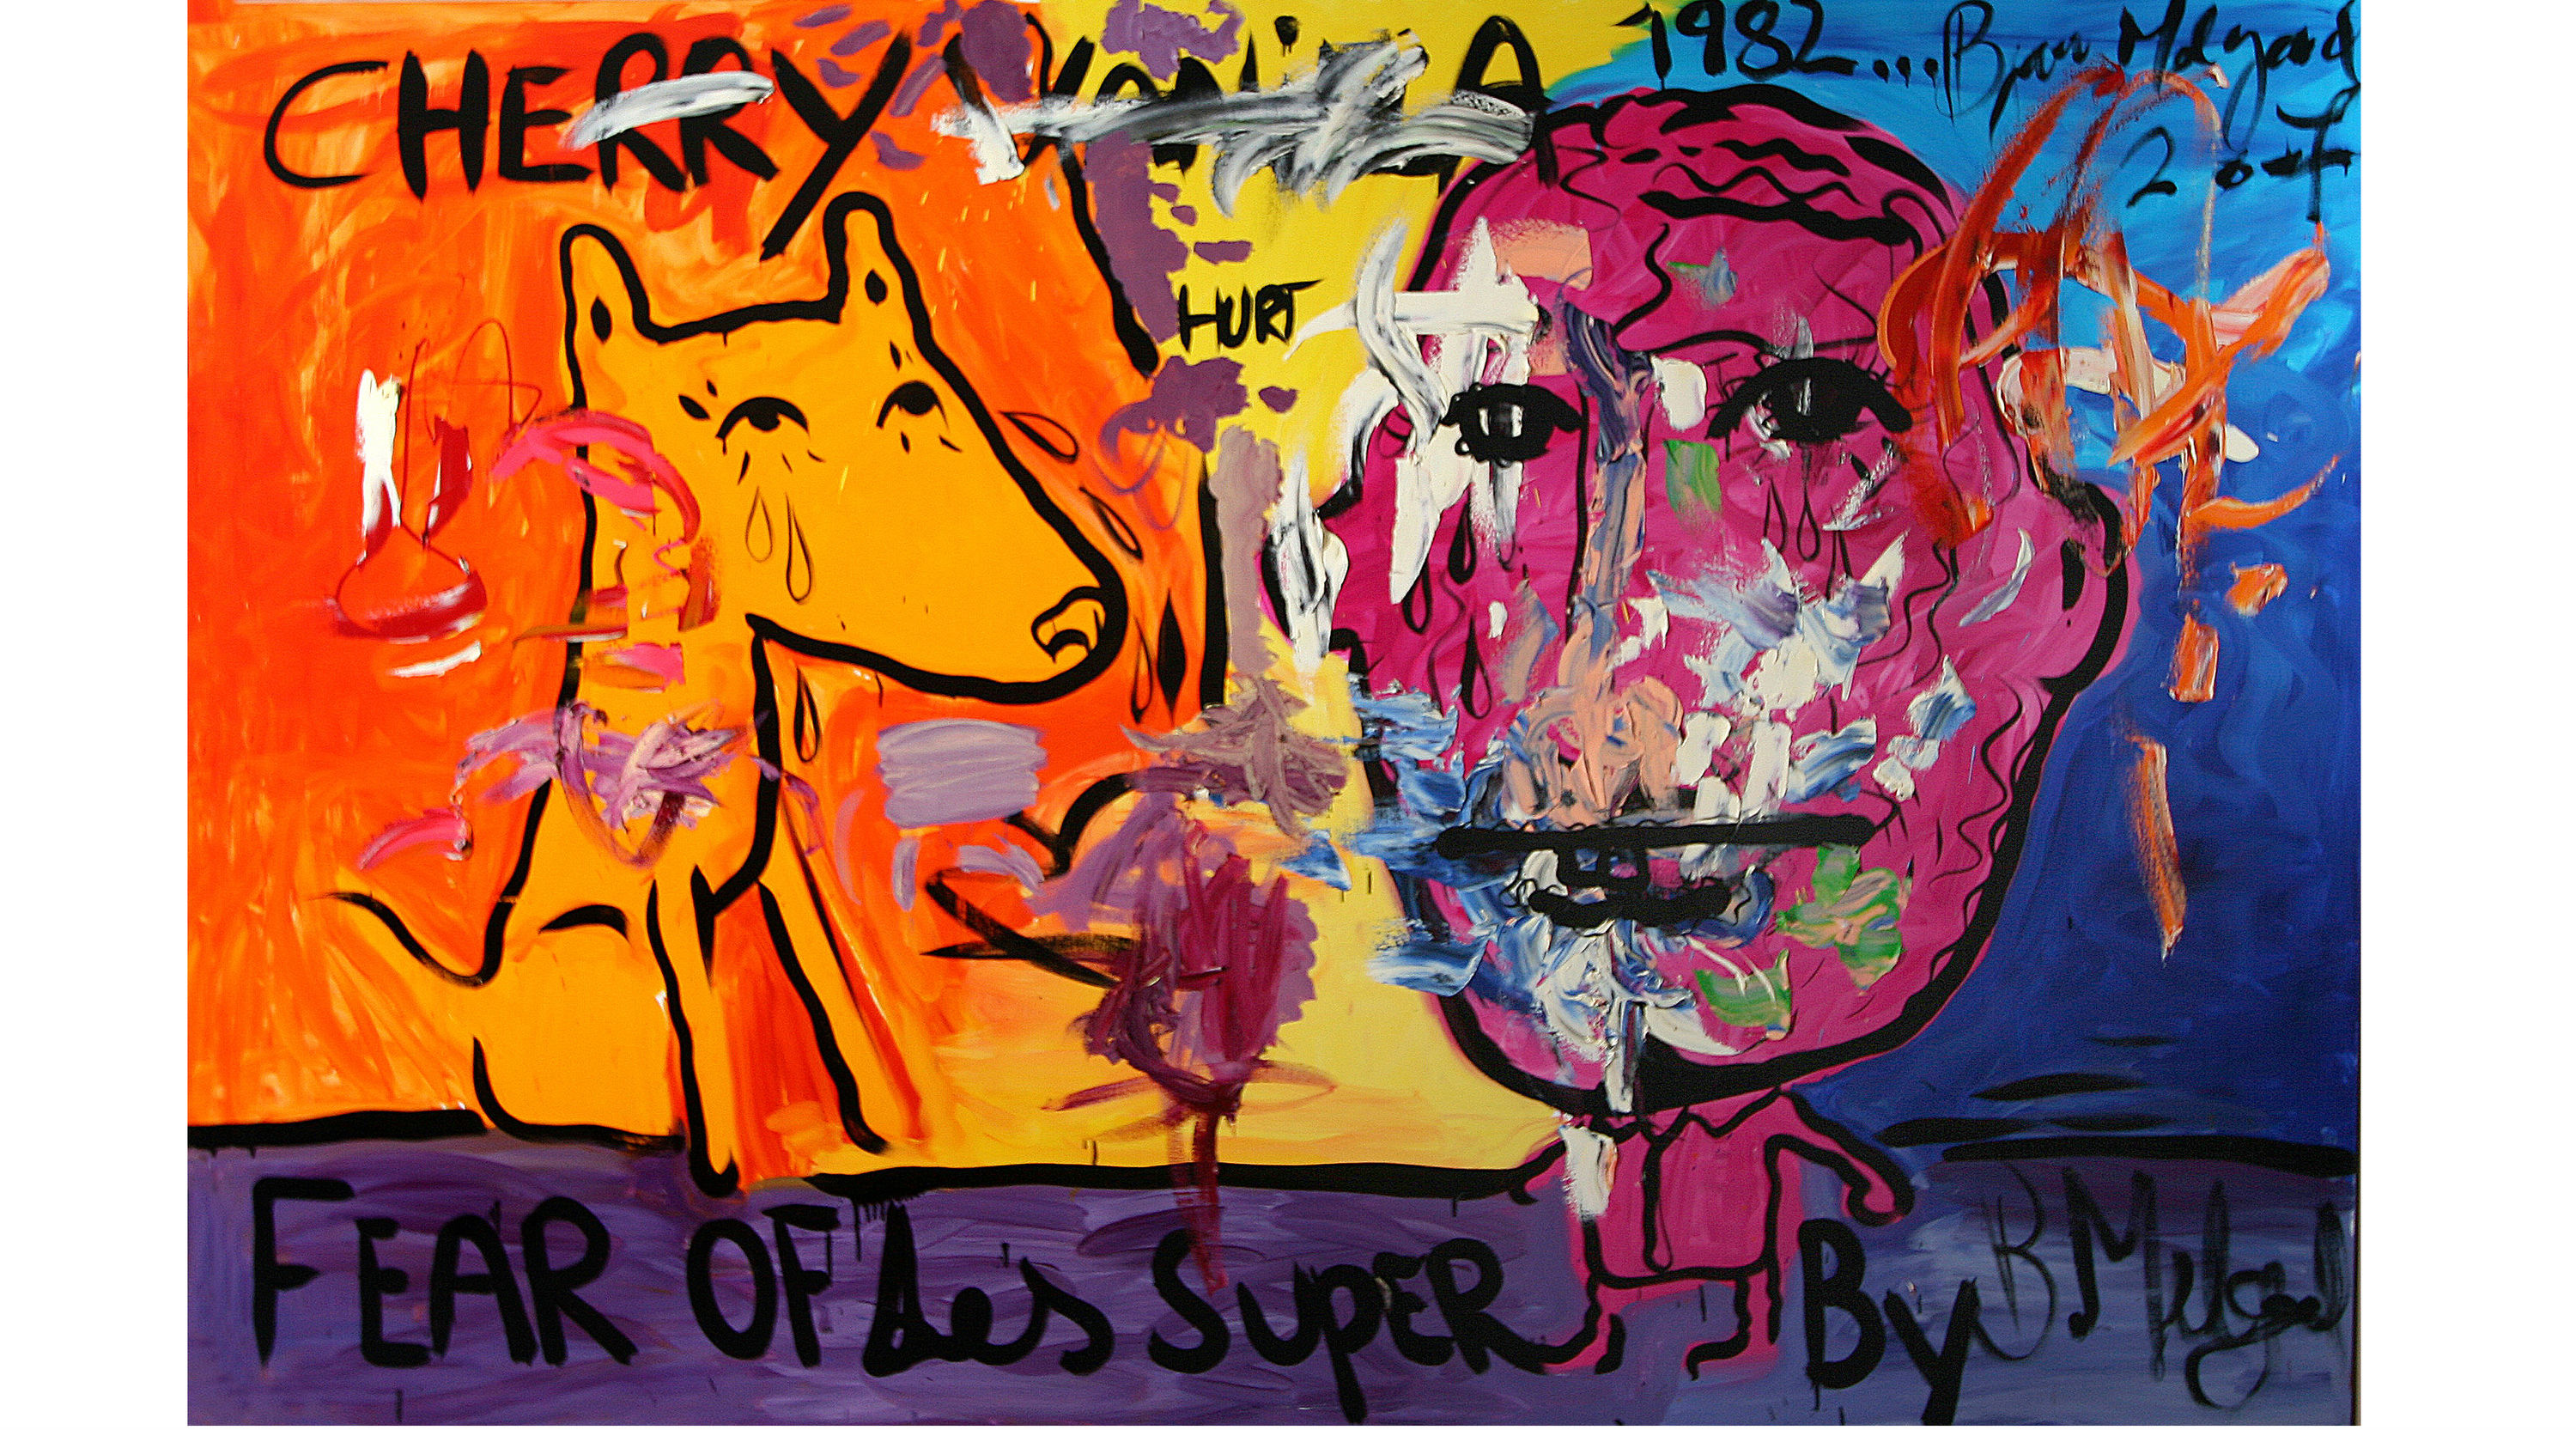 (Bjarne Melgaard  Untitled (Fear of Les Super), 2007. © Bjarne Melgaard, 2007. Courtesy of the Saatchi Gallery, London.)